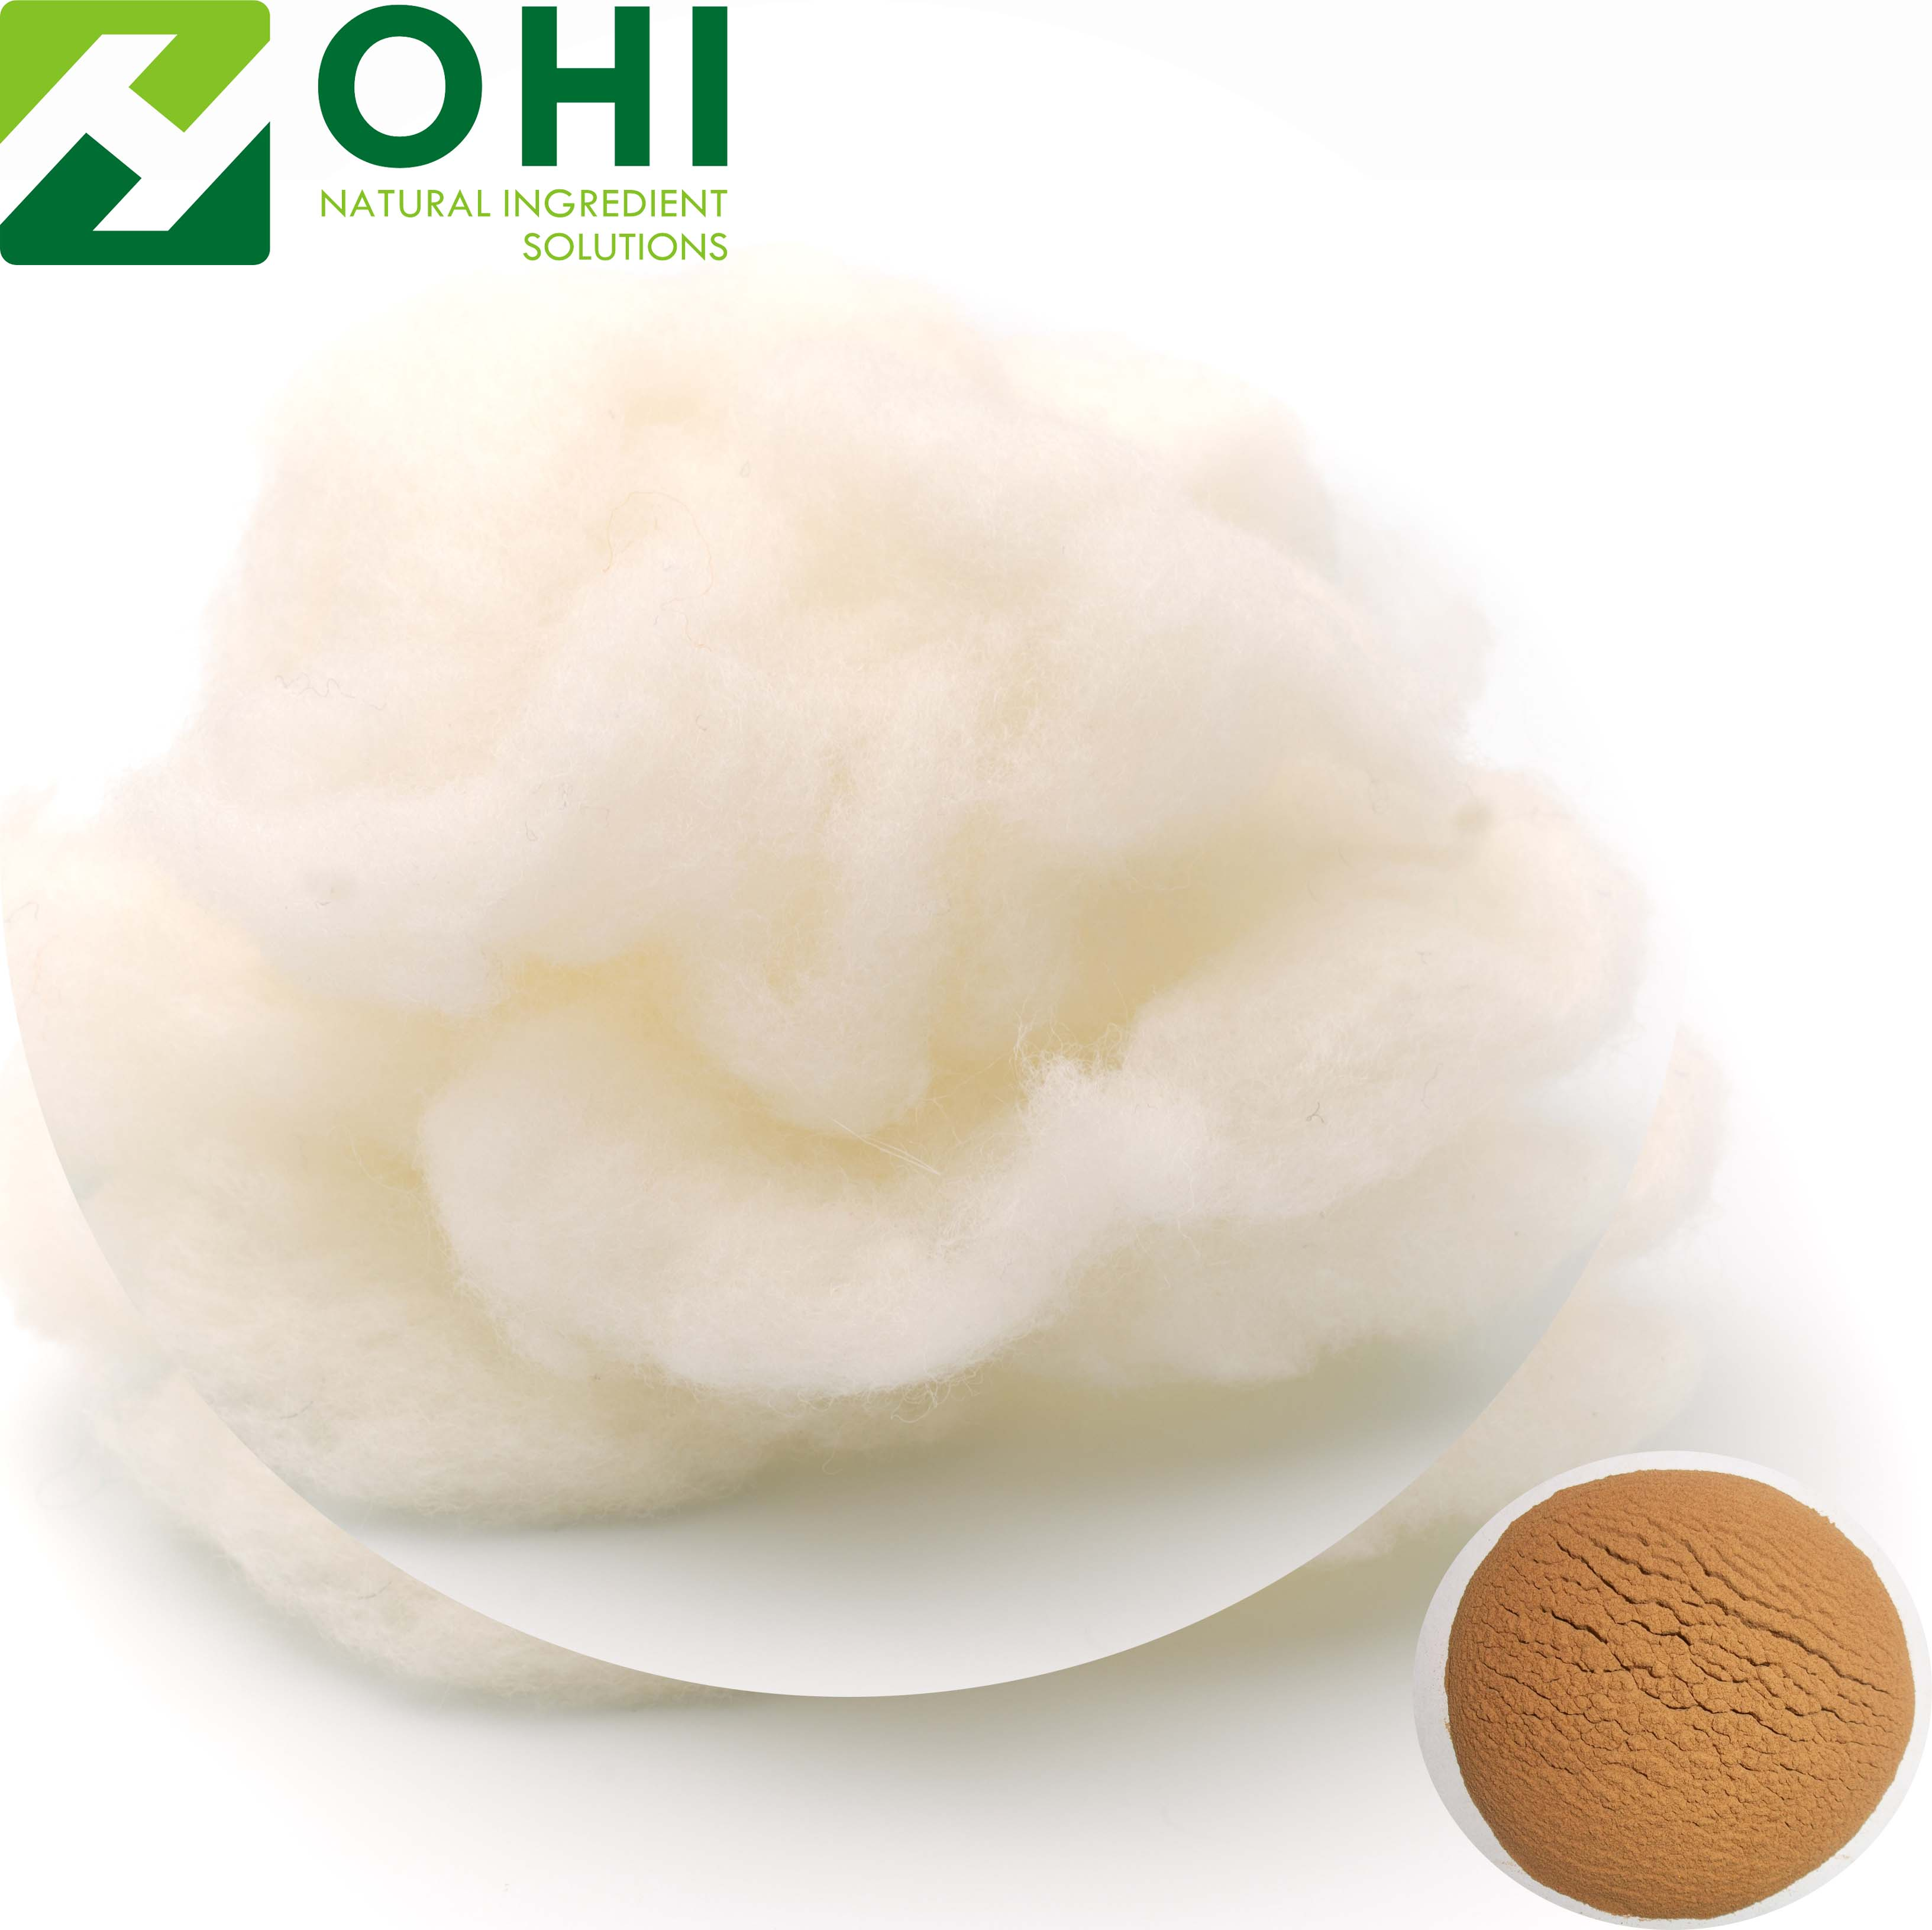 Wool Keratin extract